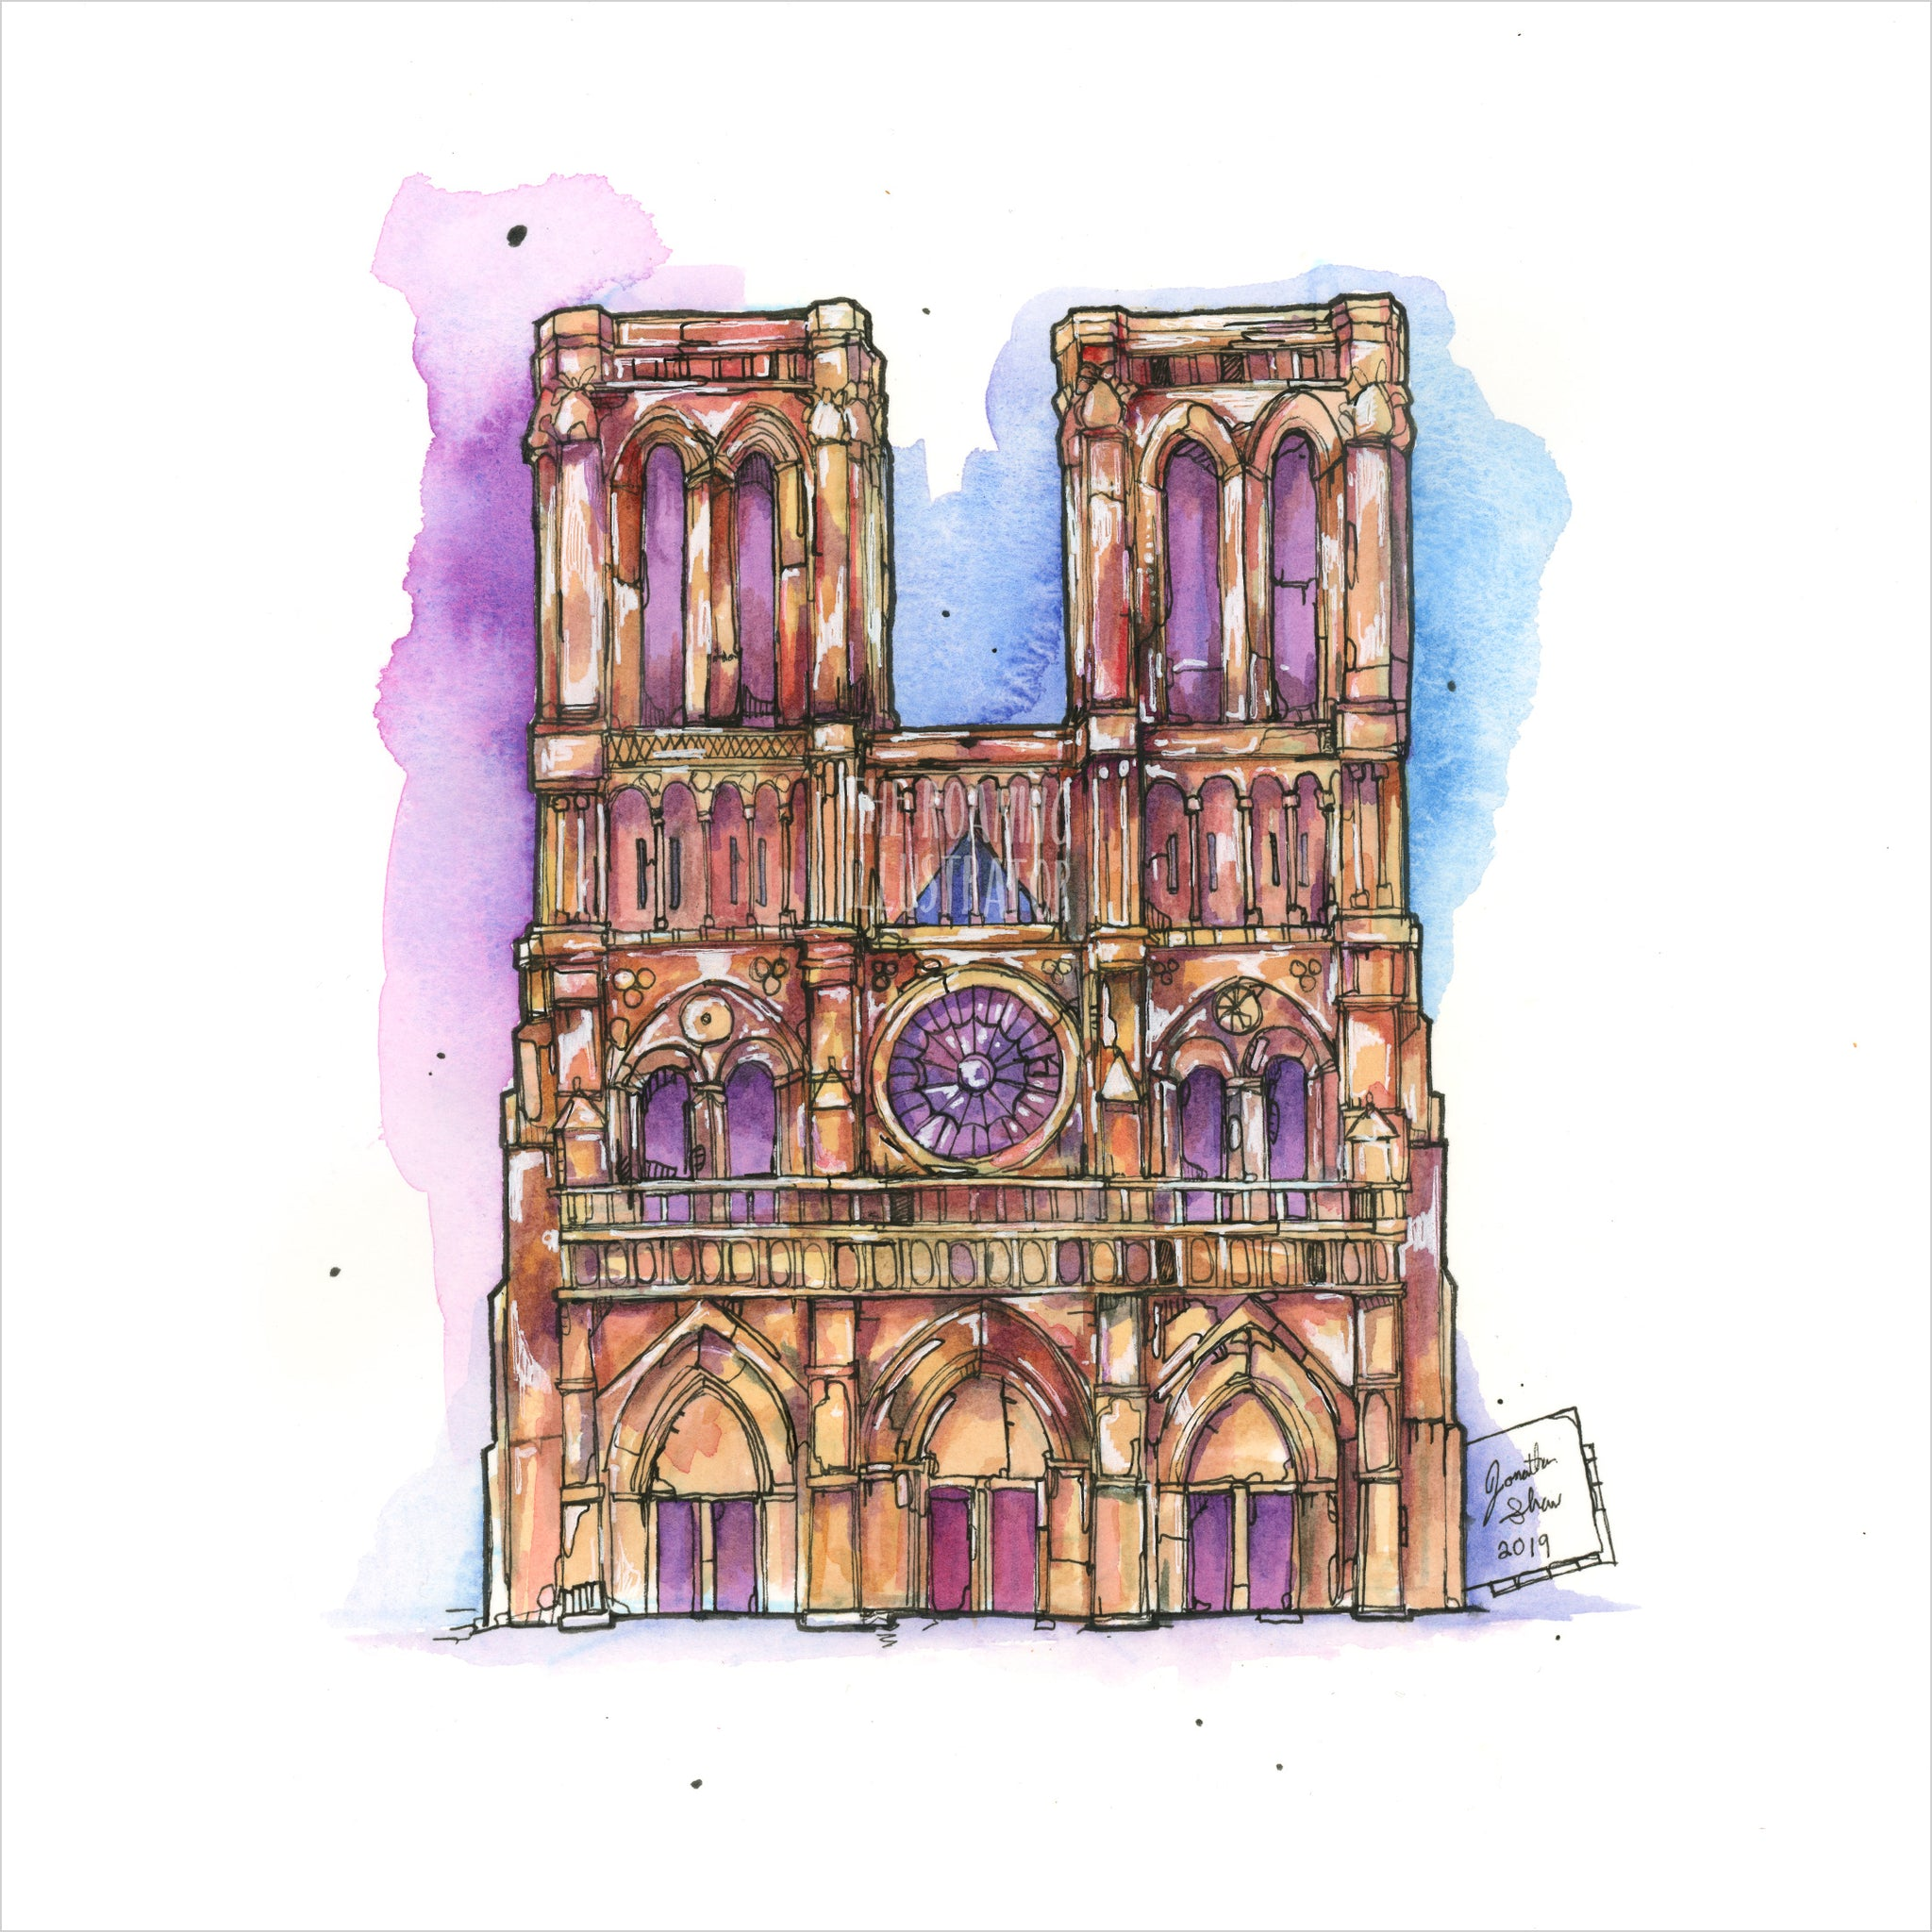 """Notre Dame"" - Original 8x10 Illustration (SOLD)"